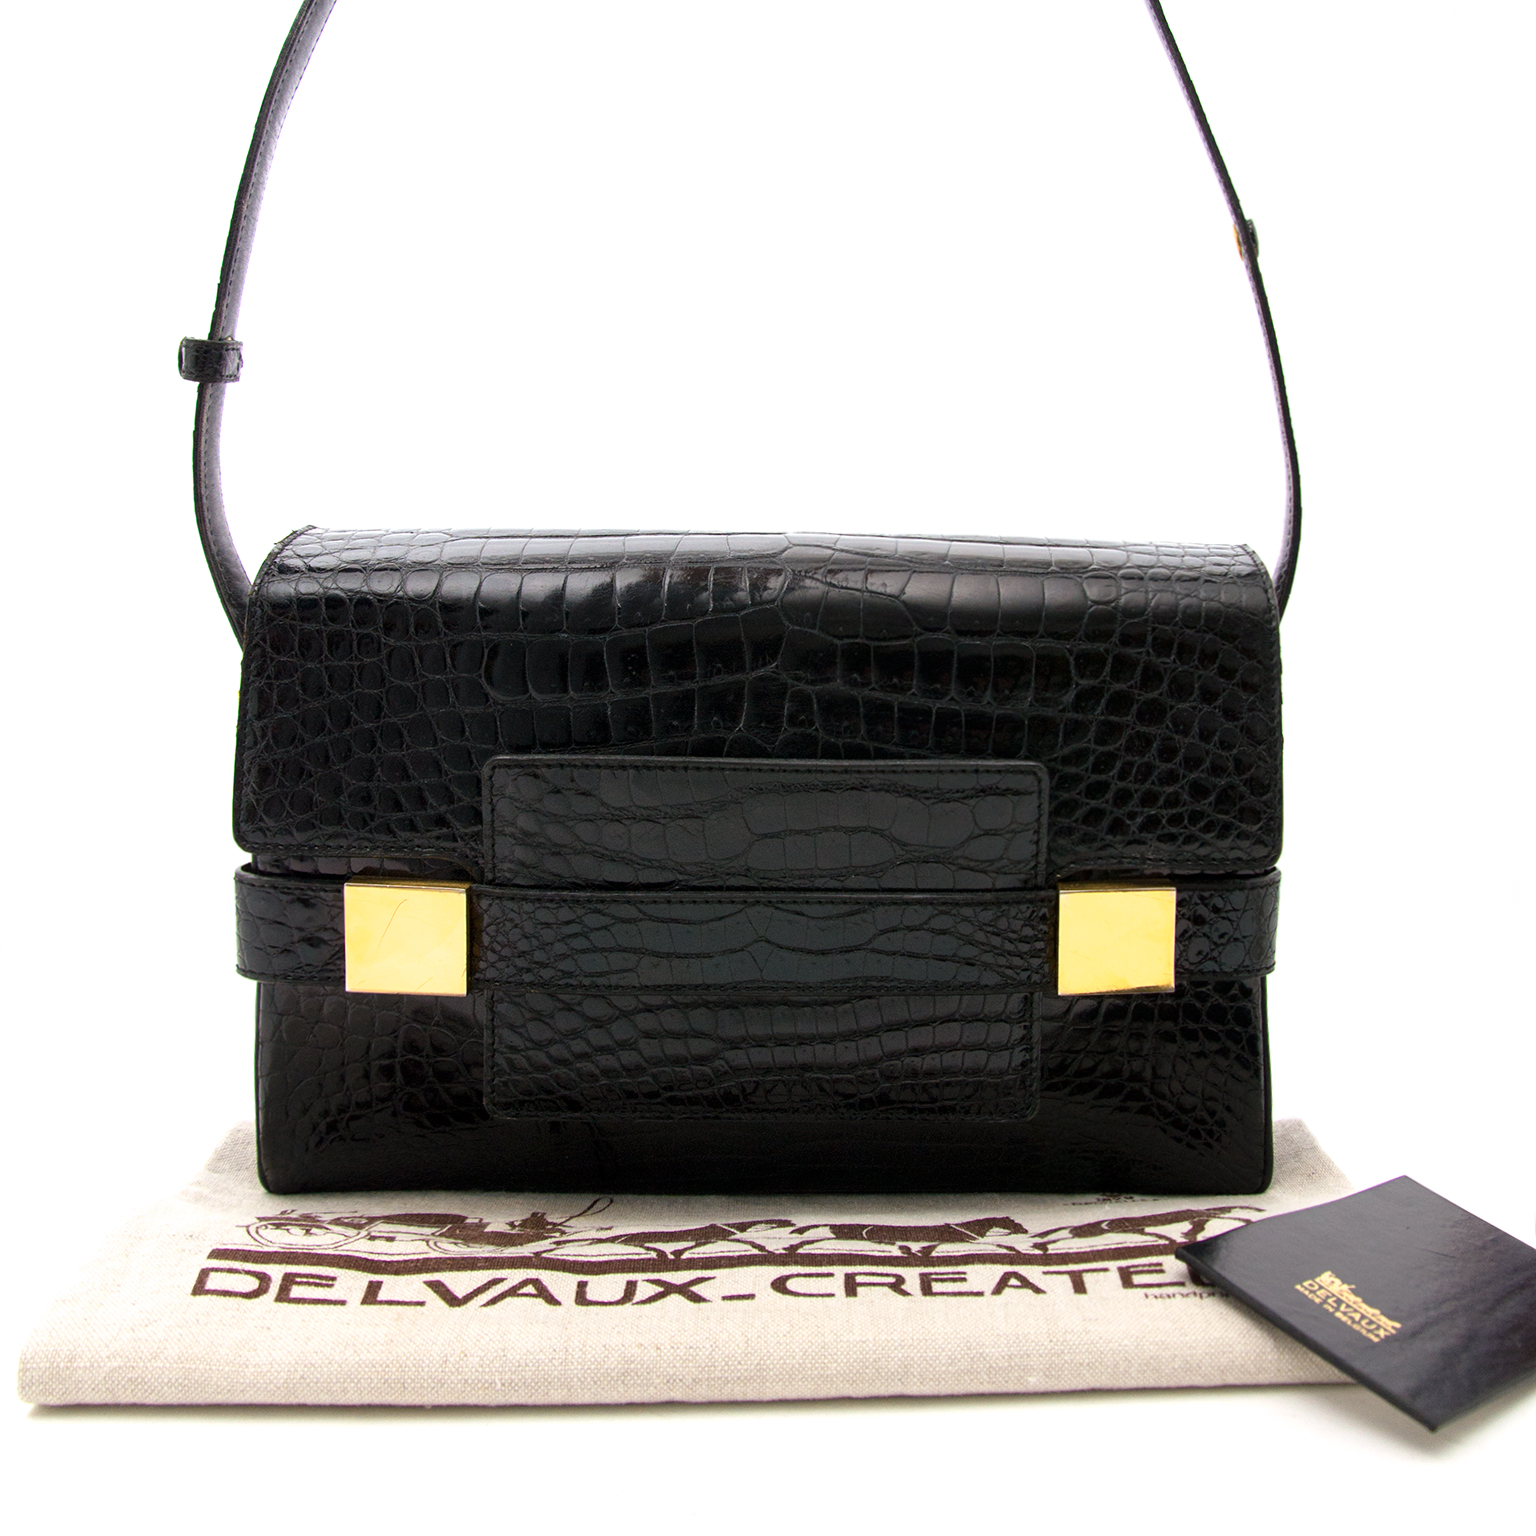 Delvaux le madame black croco leather bag for the best price at labellov.com